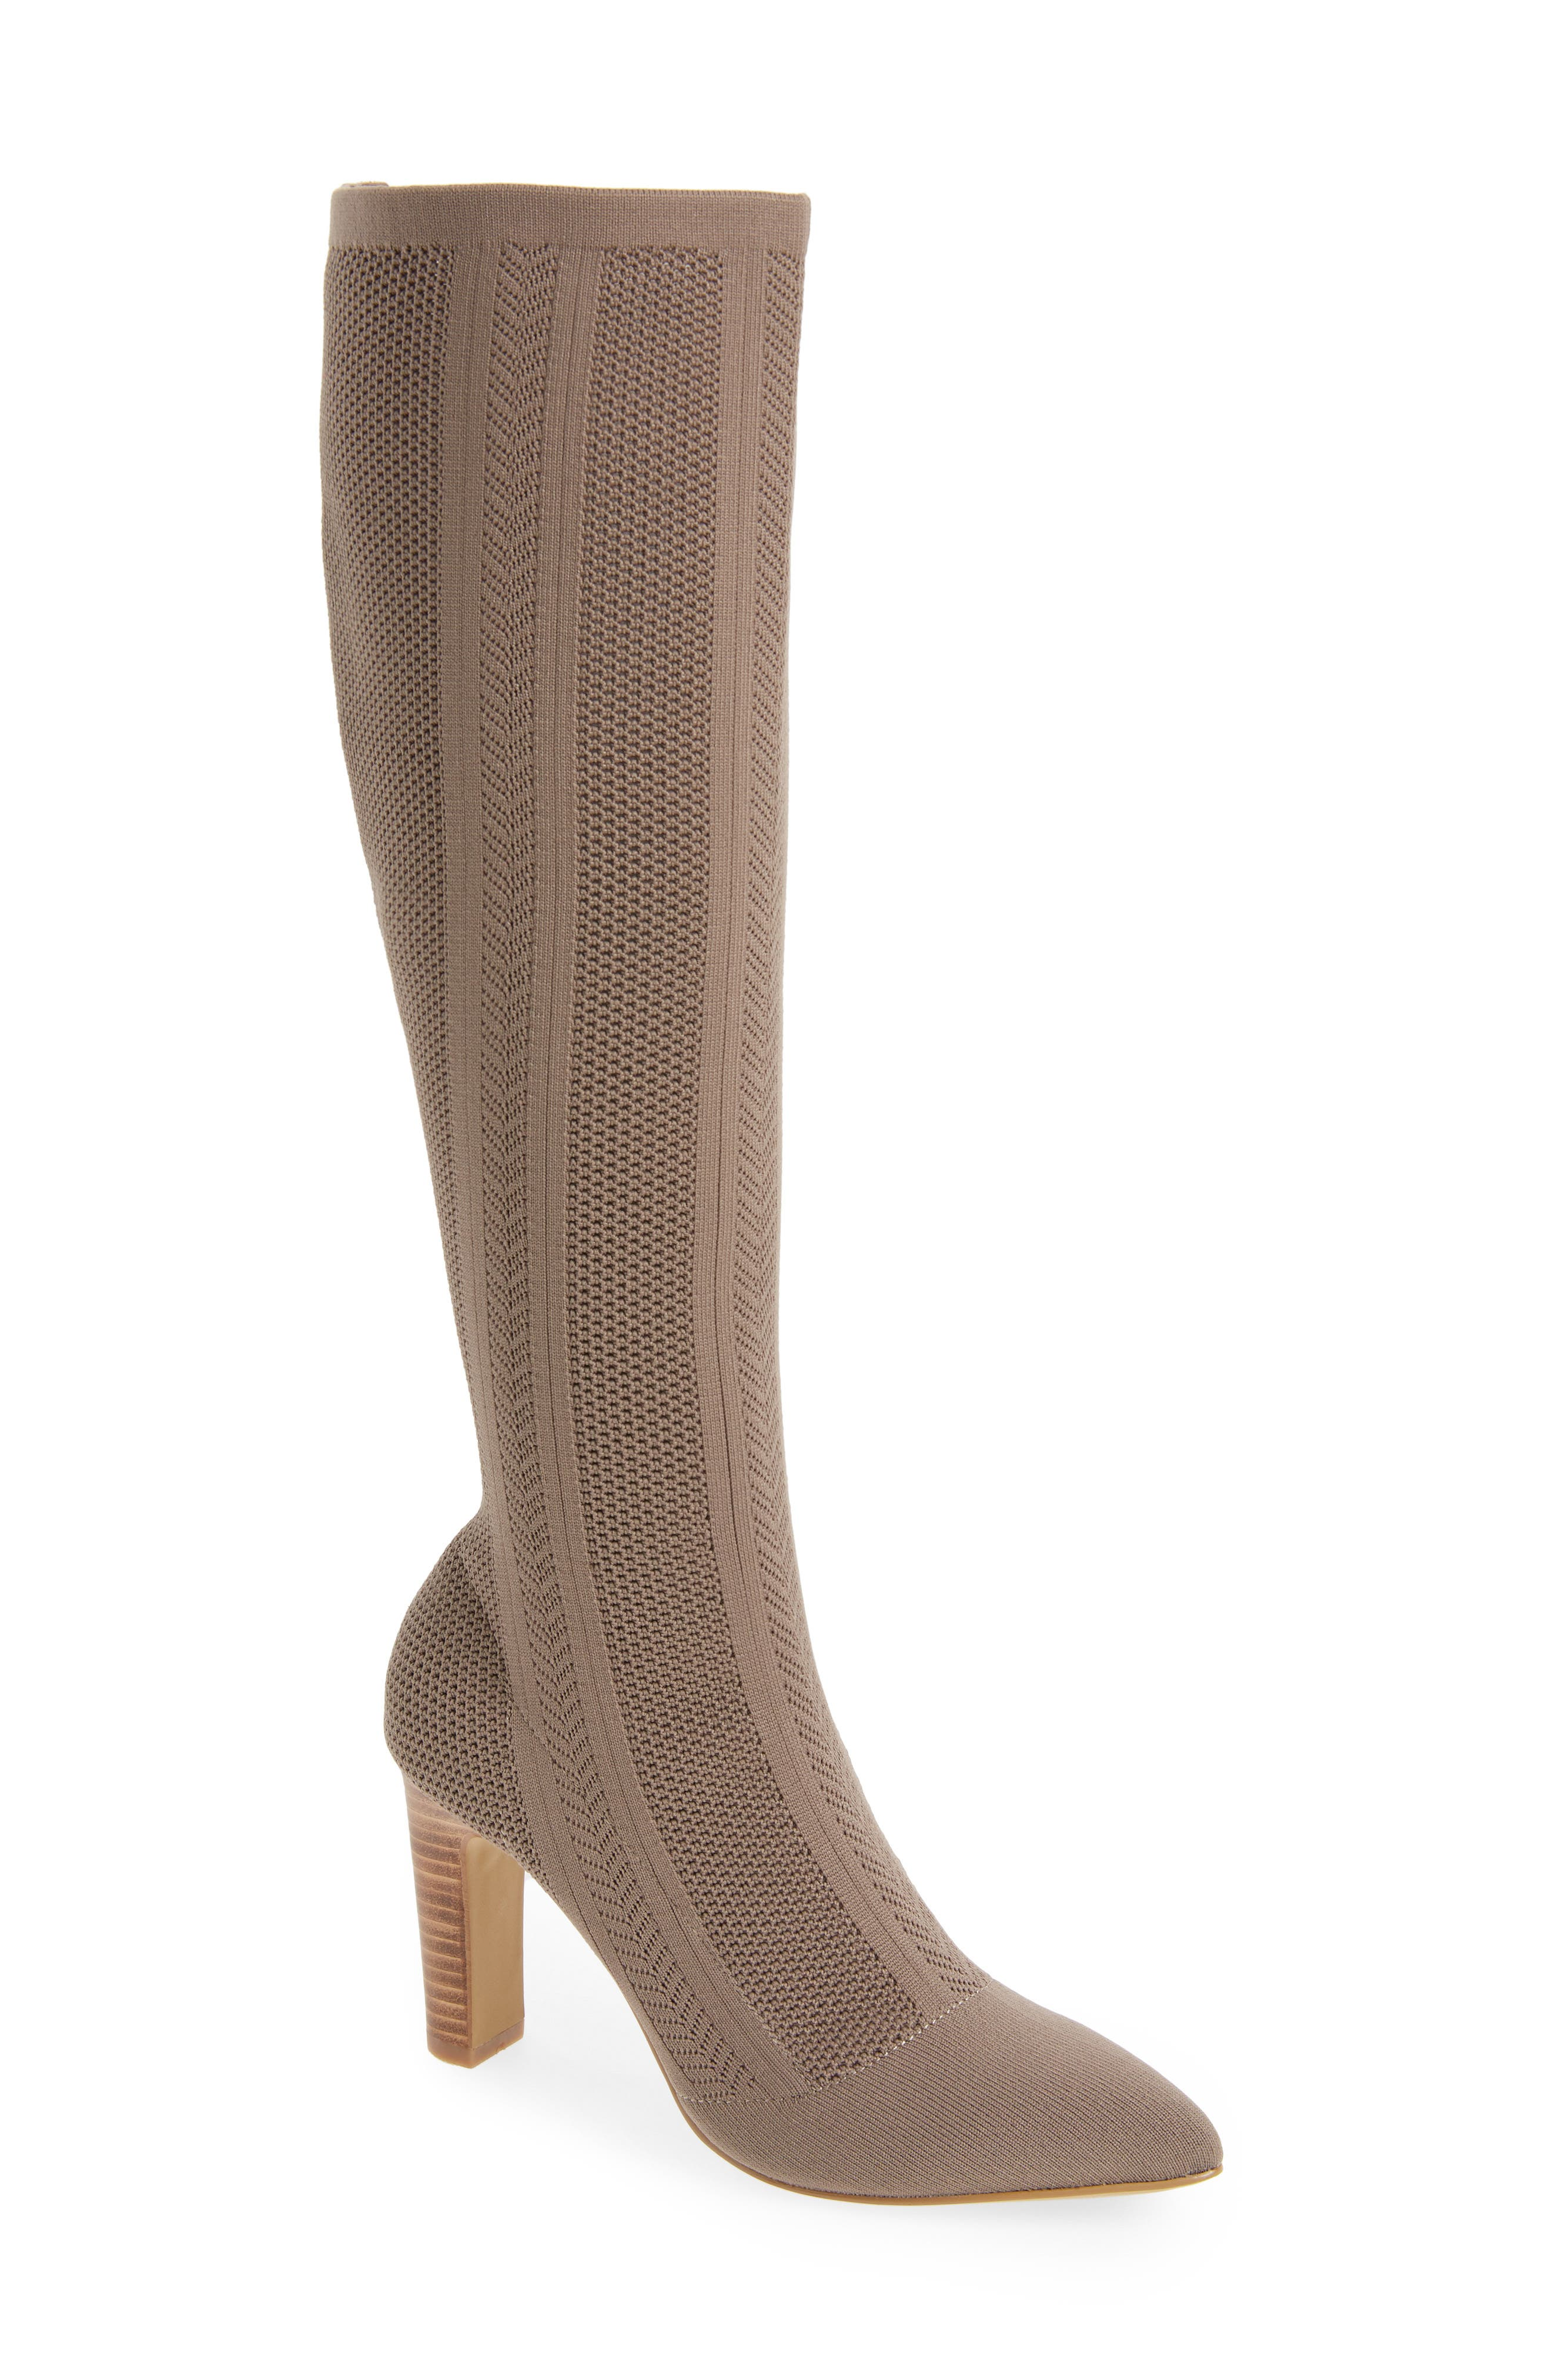 Davis Knit Boot,                         Main,                         color, TAUPE FABRIC